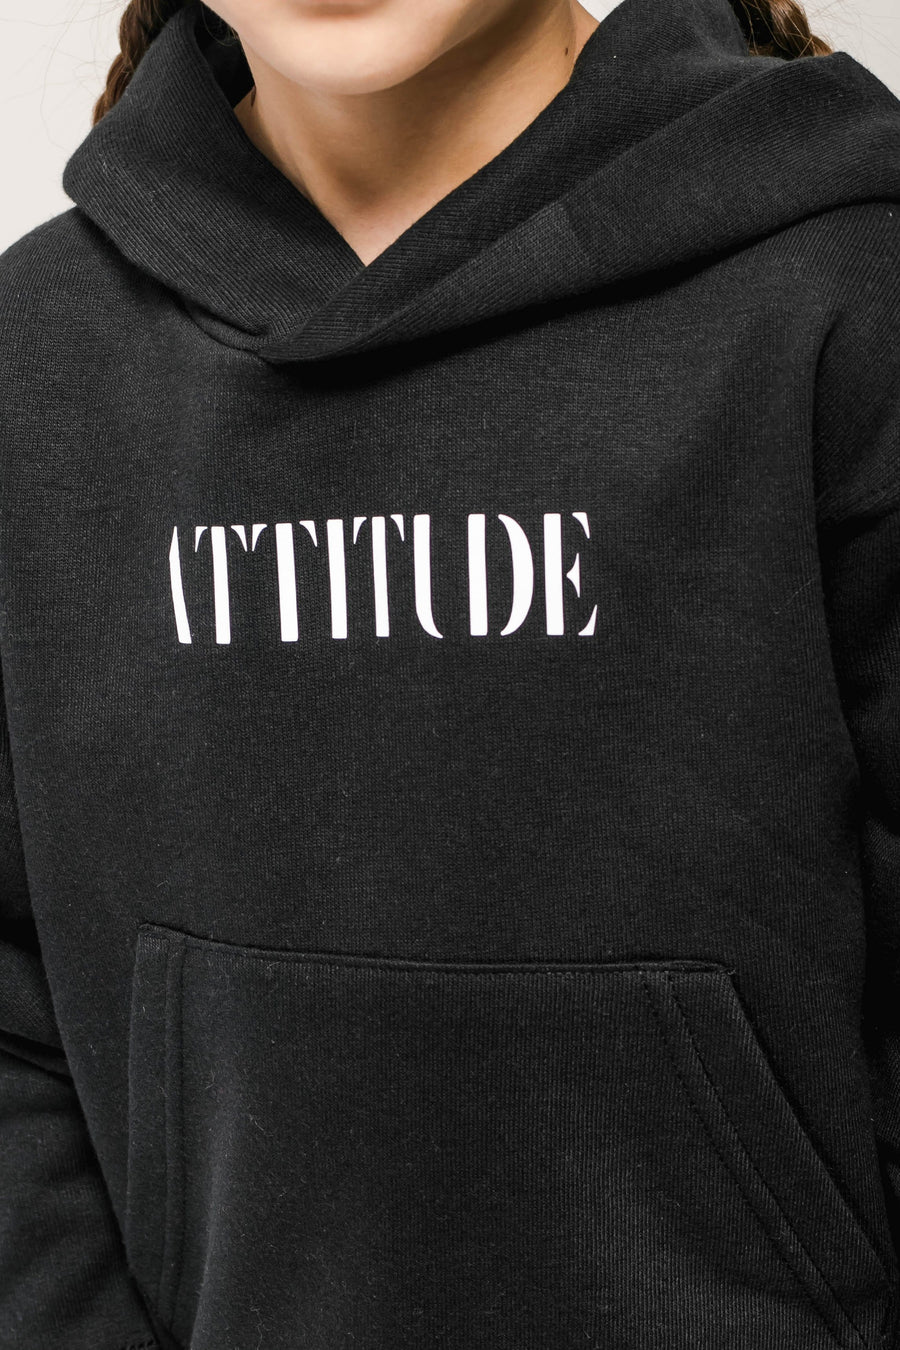 Attitude Printed Oversized Hoody Black/White